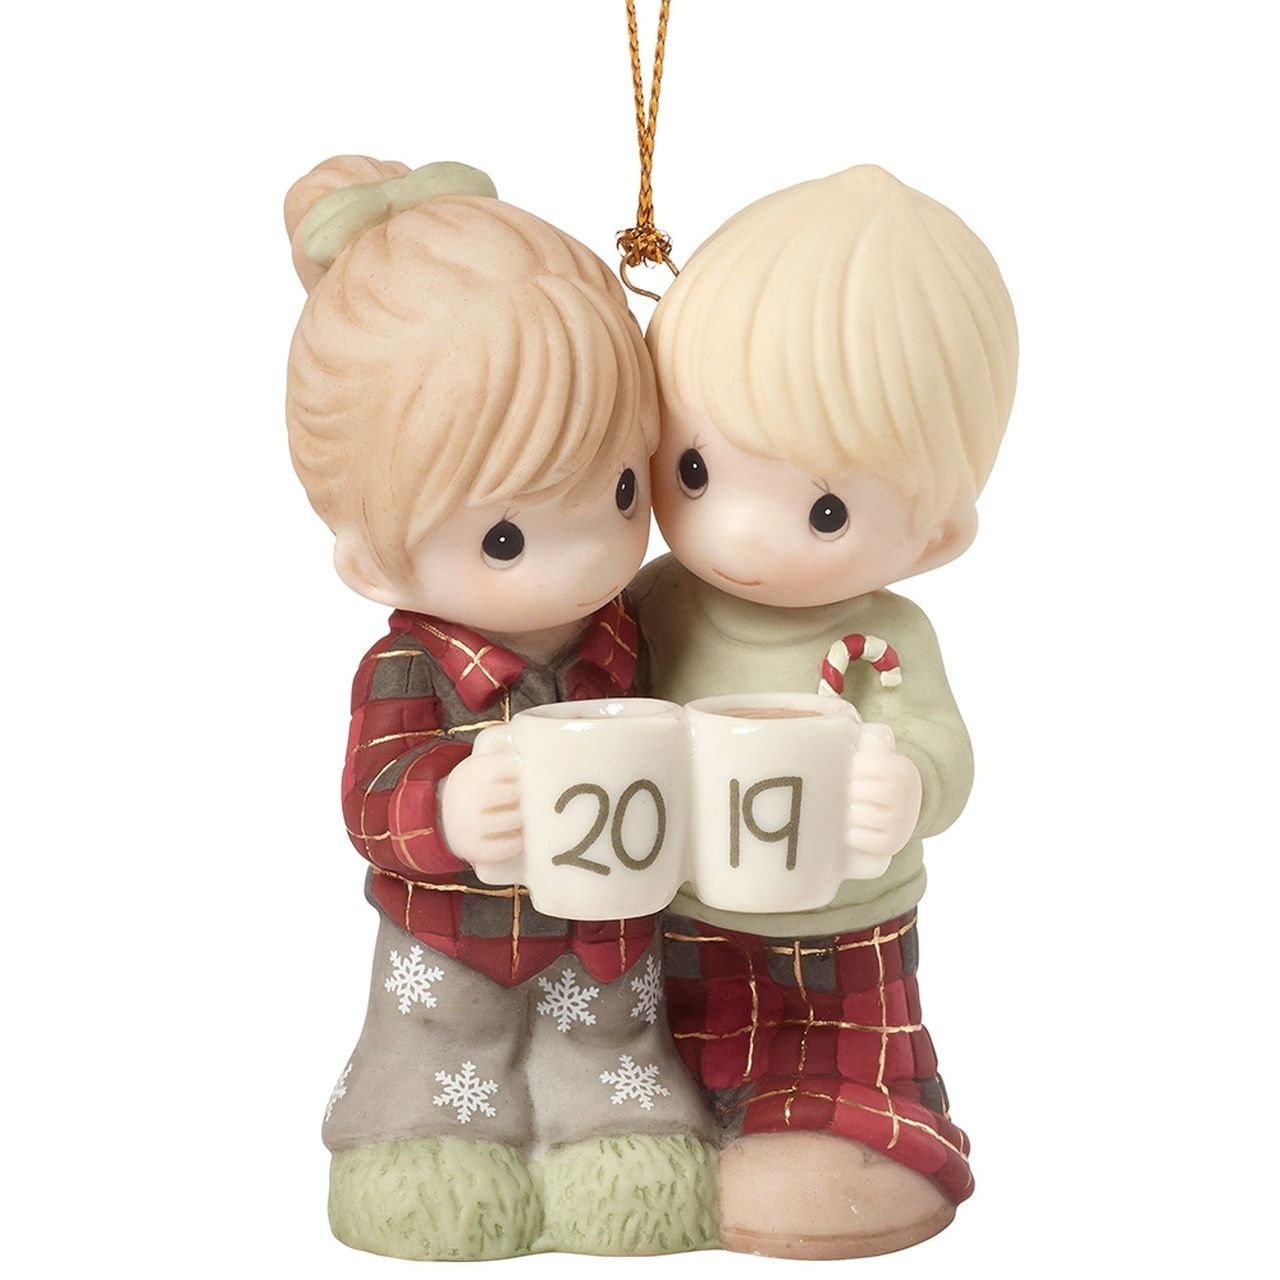 Our First Christmas Together, 2019 Dated Porcelain